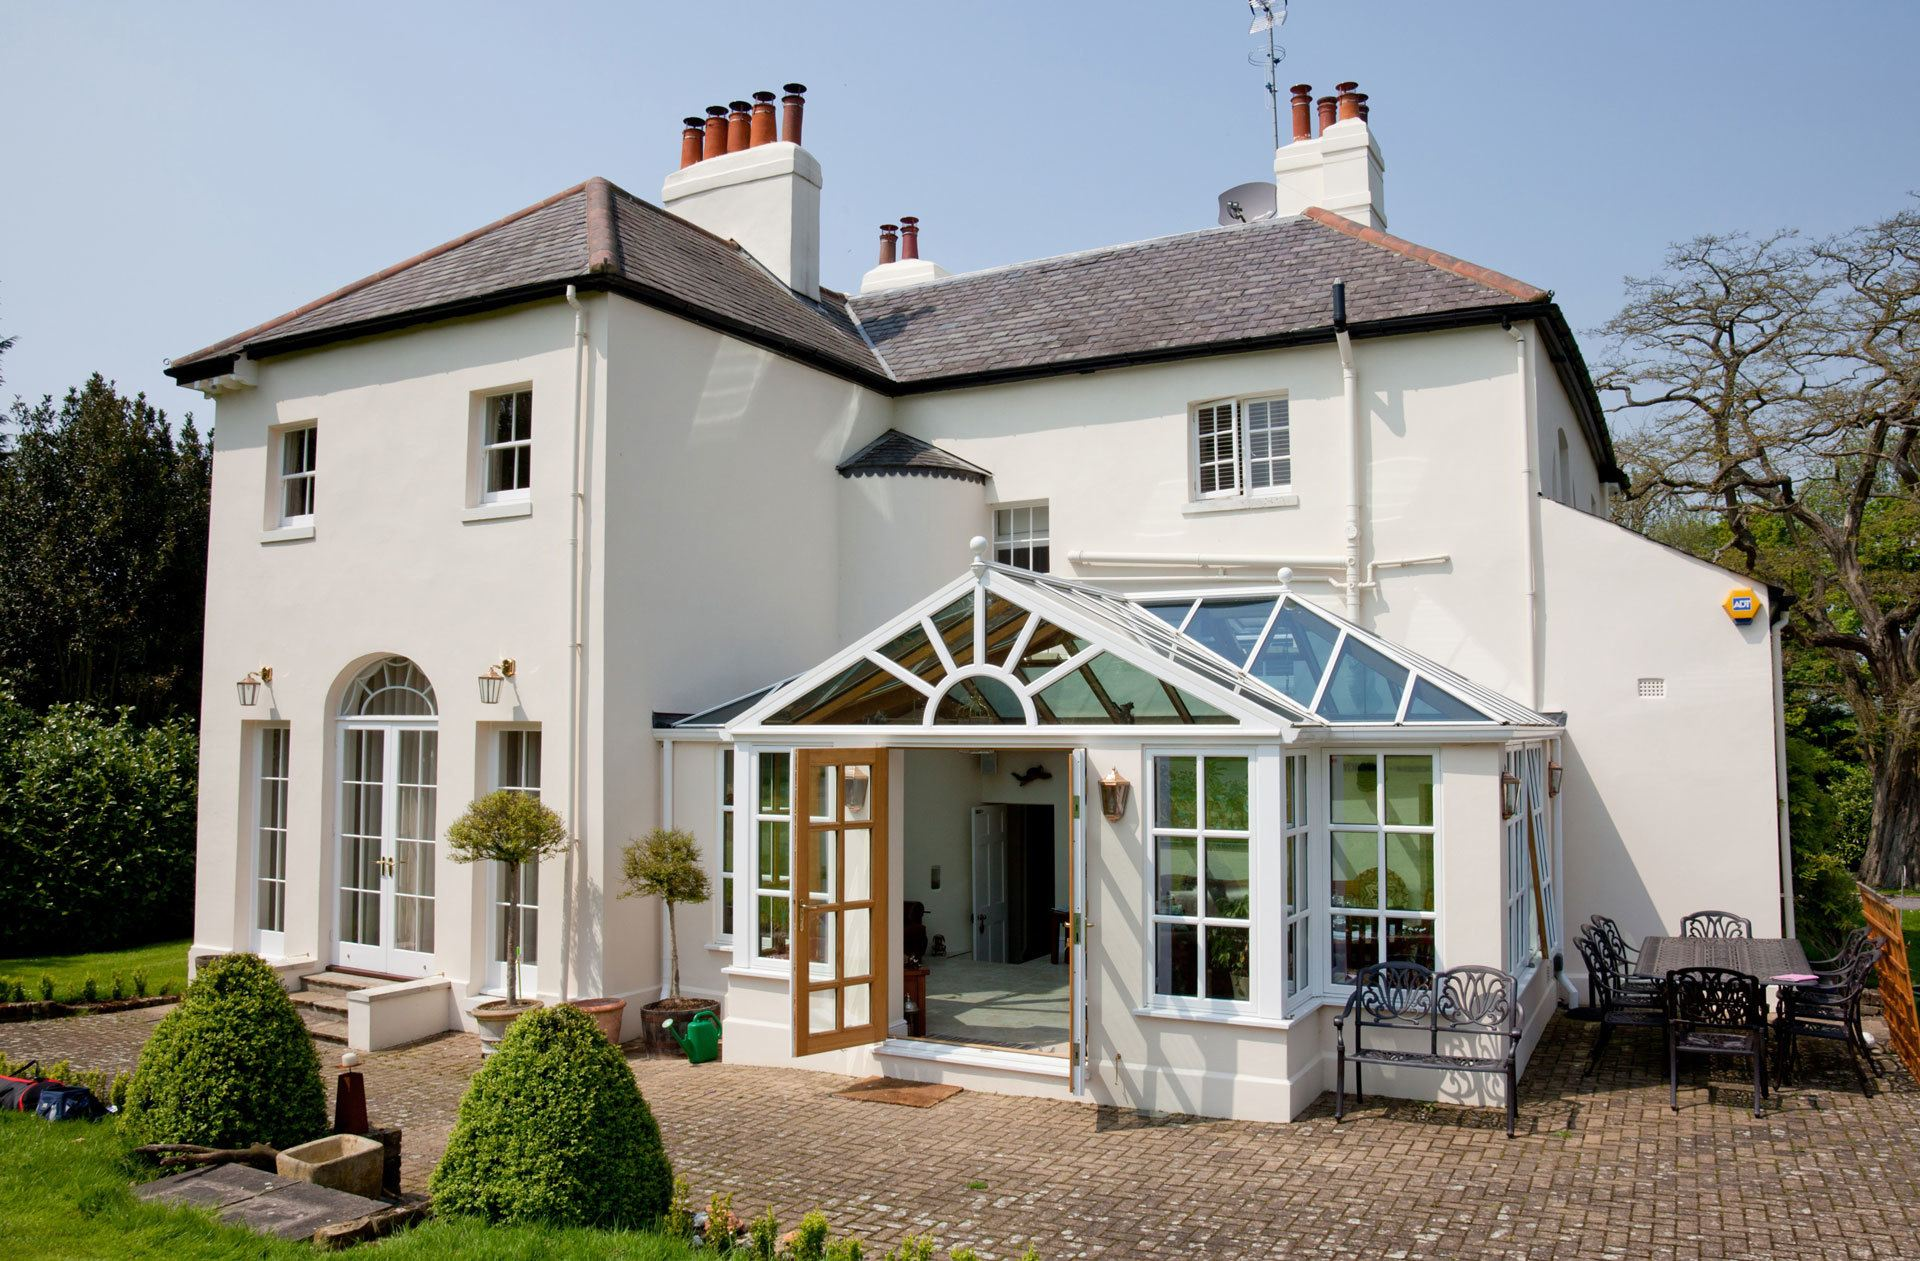 Colbert_Oak_White-Sunburst-Gable-Conservatory_conservatories_hardwood-18